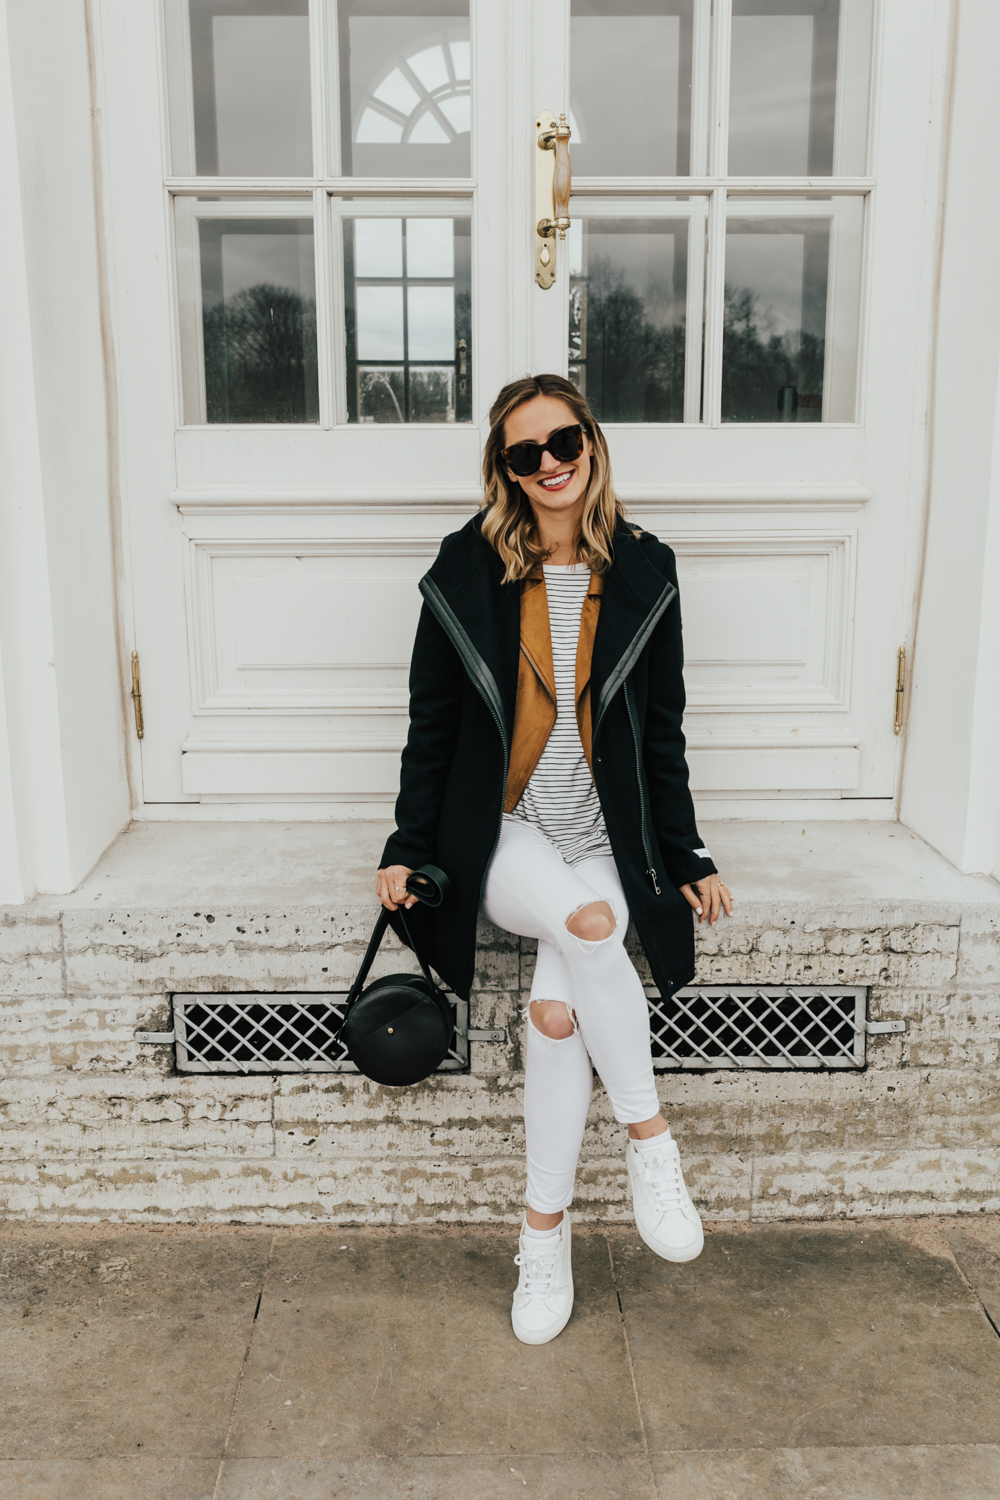 livvyland-blog-olivia-watson-regal-princess-scandinavia-cruise-may-june-itinerary-what-to-wear-pack-ports-russia-saint-petersburg-city-guide-travel-diary-june-outfit